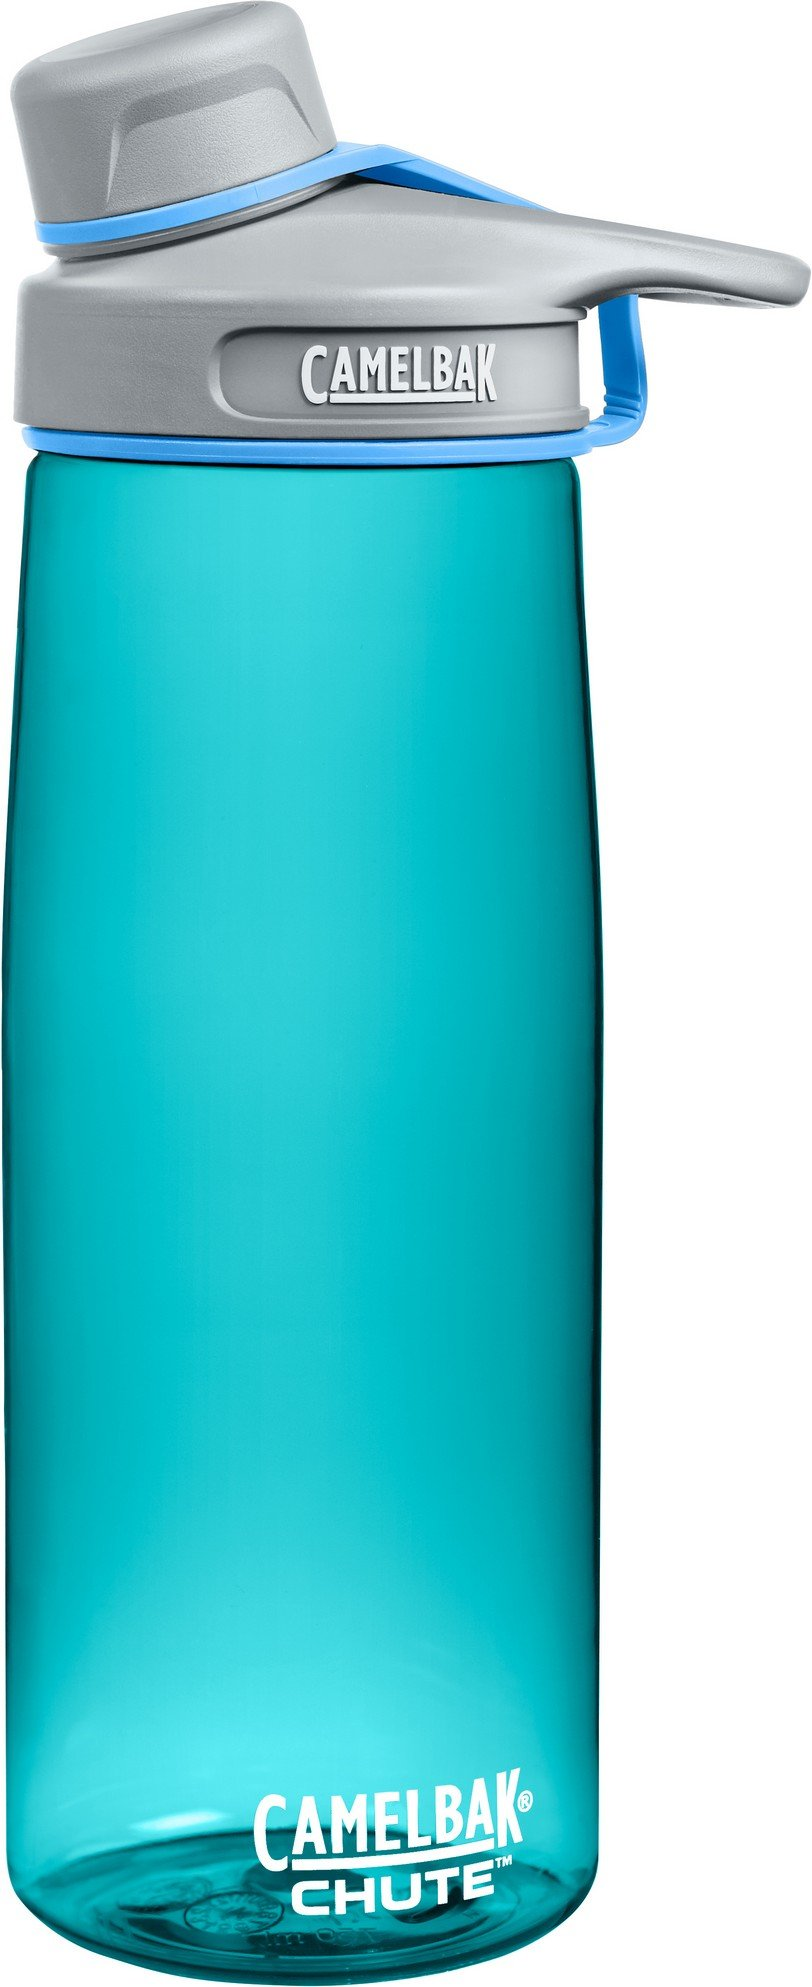 CamelBak Chute Water Bottle, 0.75 L, Sea Glass